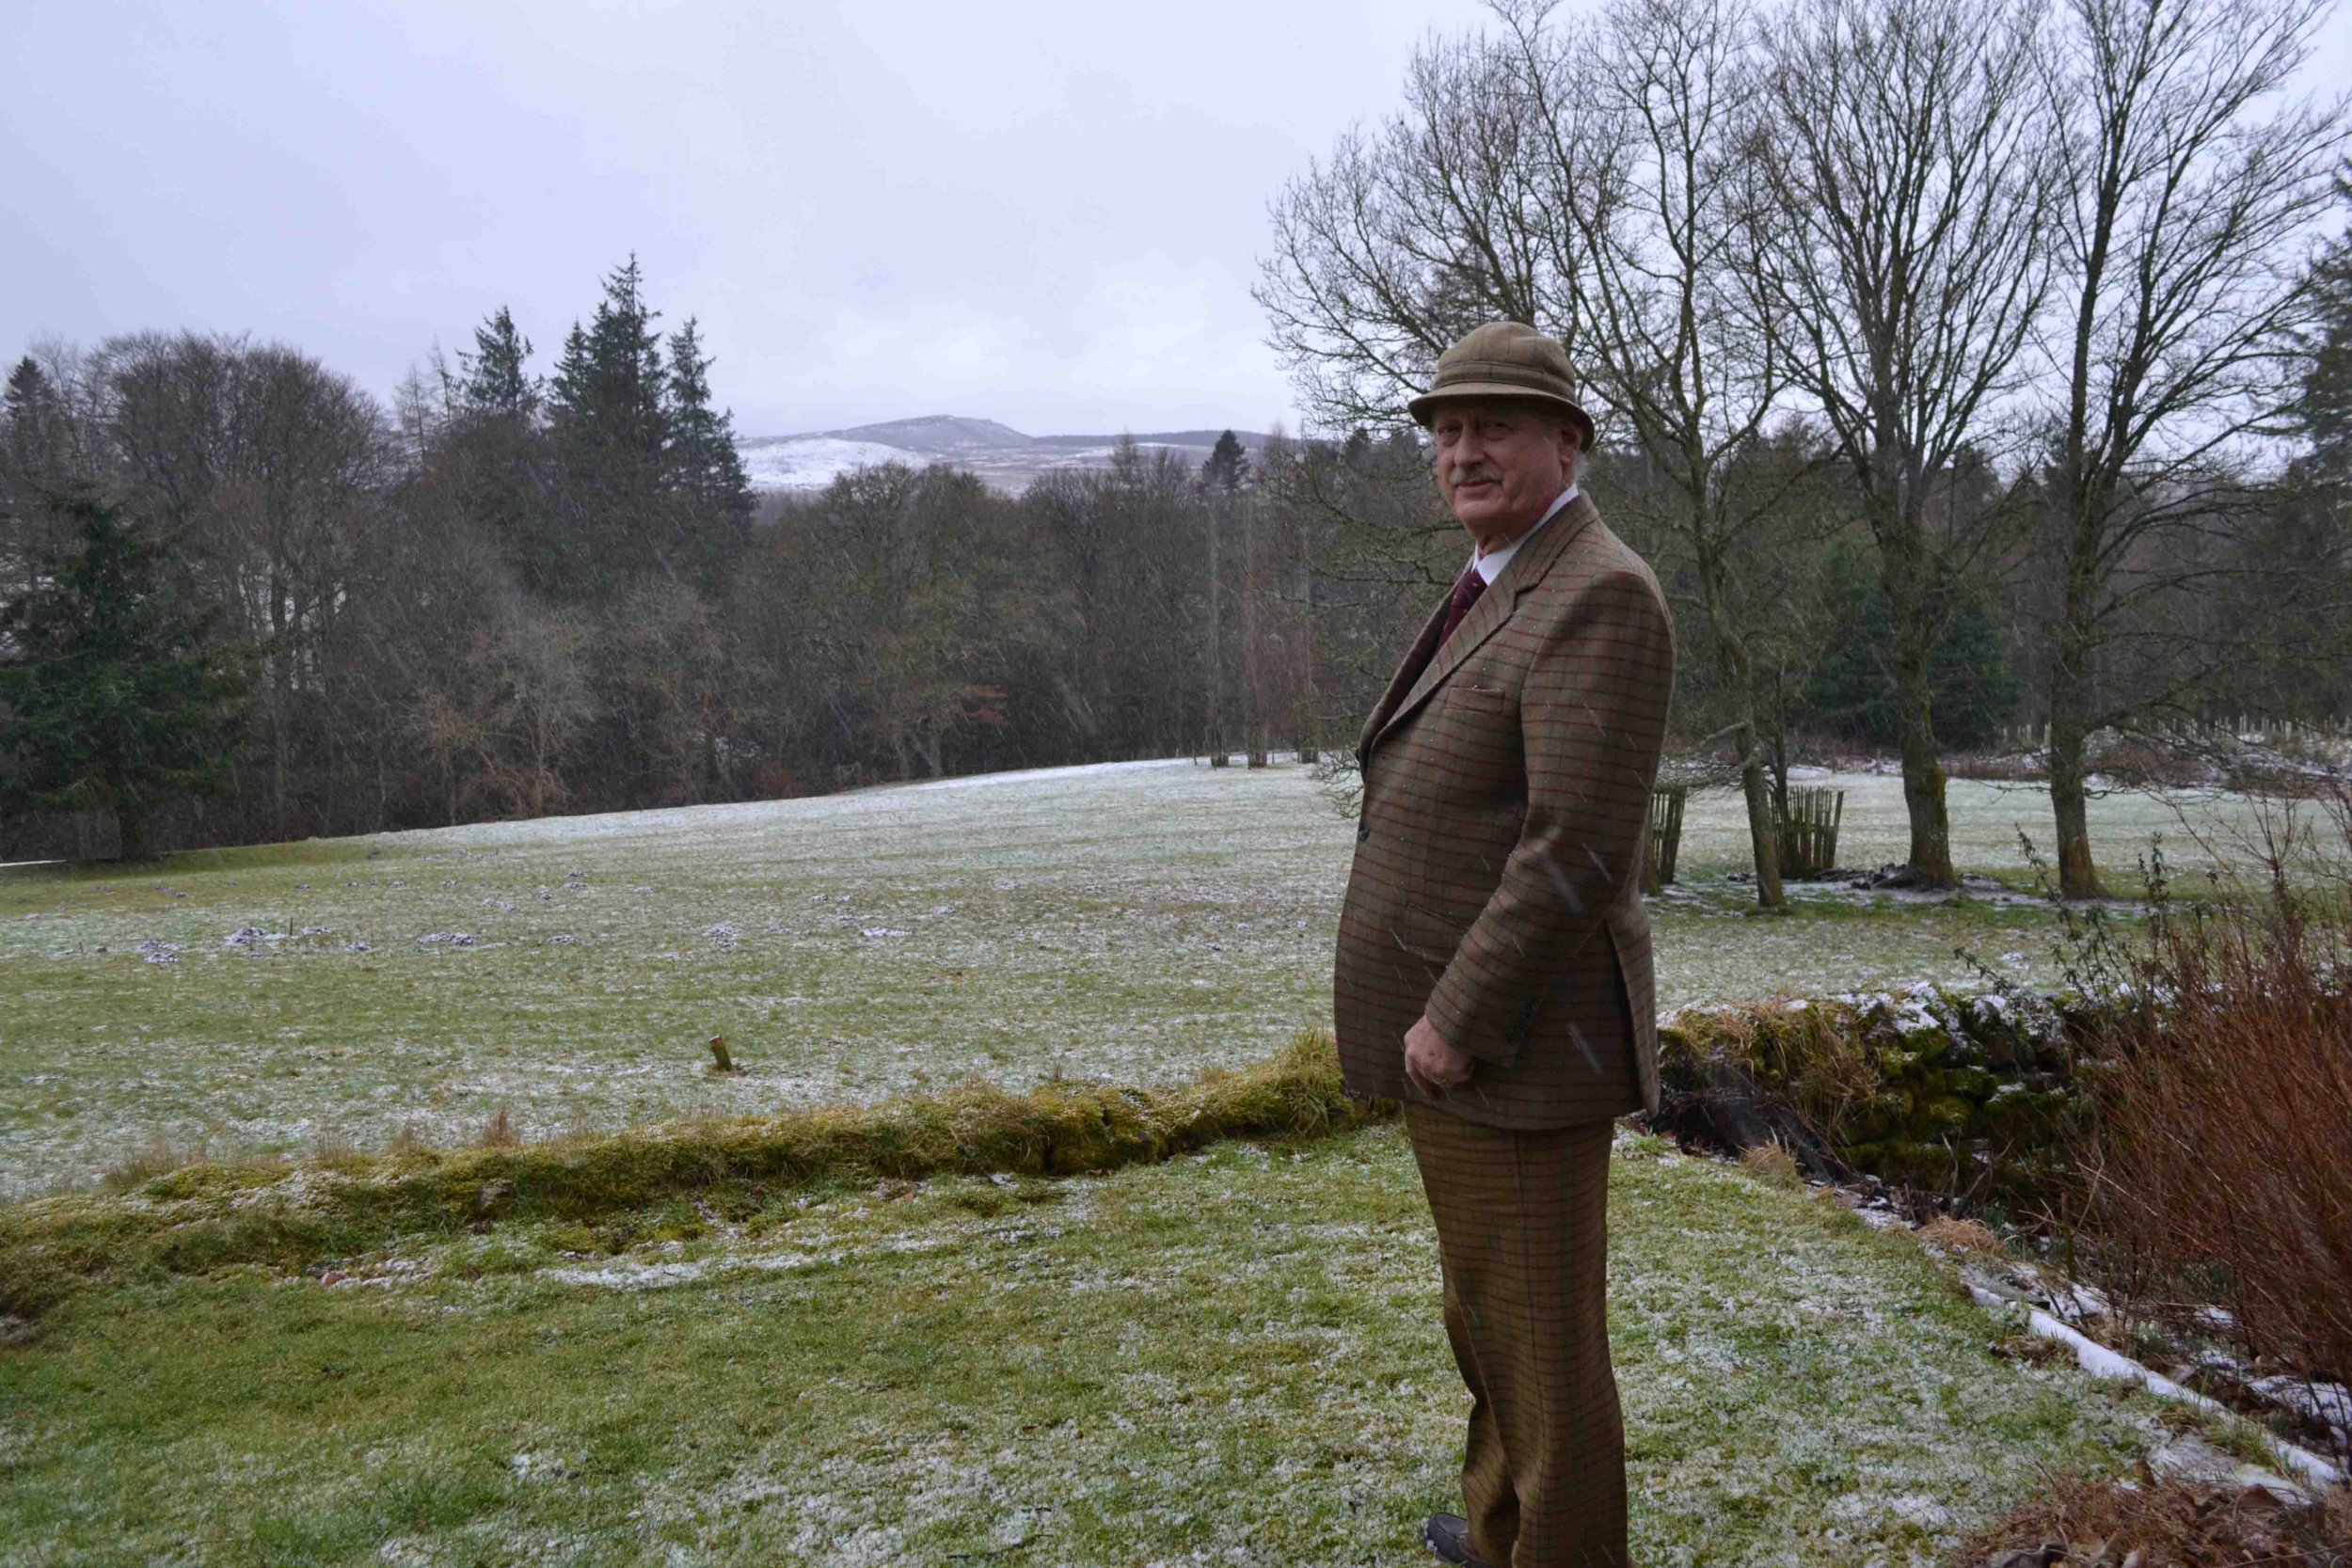 A landowner wants to honour the Queen by erecting a towering sculpture three times the height of The Angel of the North. Viscount Devonport hopes his proposed Elizabeth Landmark will boost tourism in some of the nearby rural communities. Three artists were invited to submit proposals for the site on top of a hill called Cold Law on his Ray Demesne estate, which lies between the A68 and the A696 at Kirkwhelpington. Curator Matthew Jarrett, who helped to select the artists, said the proposed sculpture would stand 60m high (Gateshead?s Angel is 20m high) and, from its elevated position, be equal in height to the prominent Great Wanney Crag on the estate. Viscount Devonport in his garden with the site of the proposed sculpture beyond the trees